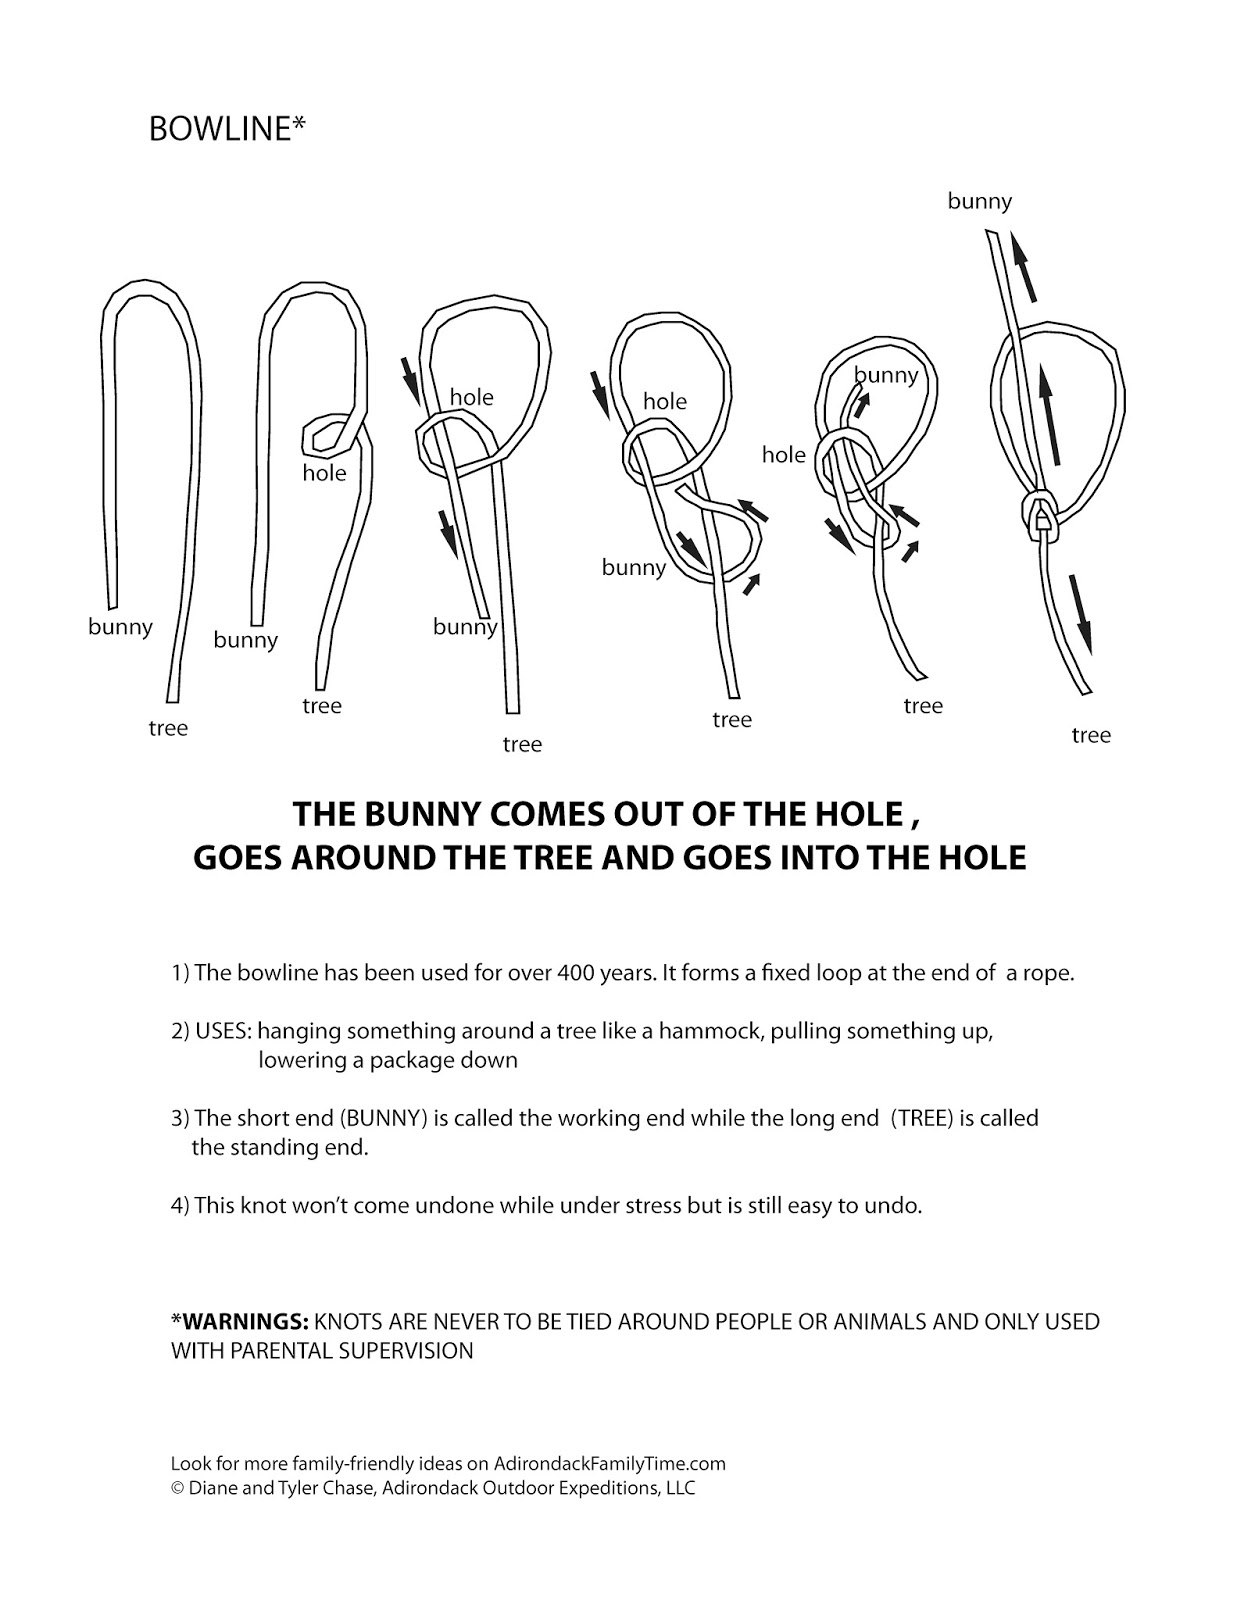 Free Activity Learn To Tie A Bowline Print Out This Knot Tying Worksheet And Fun Facts